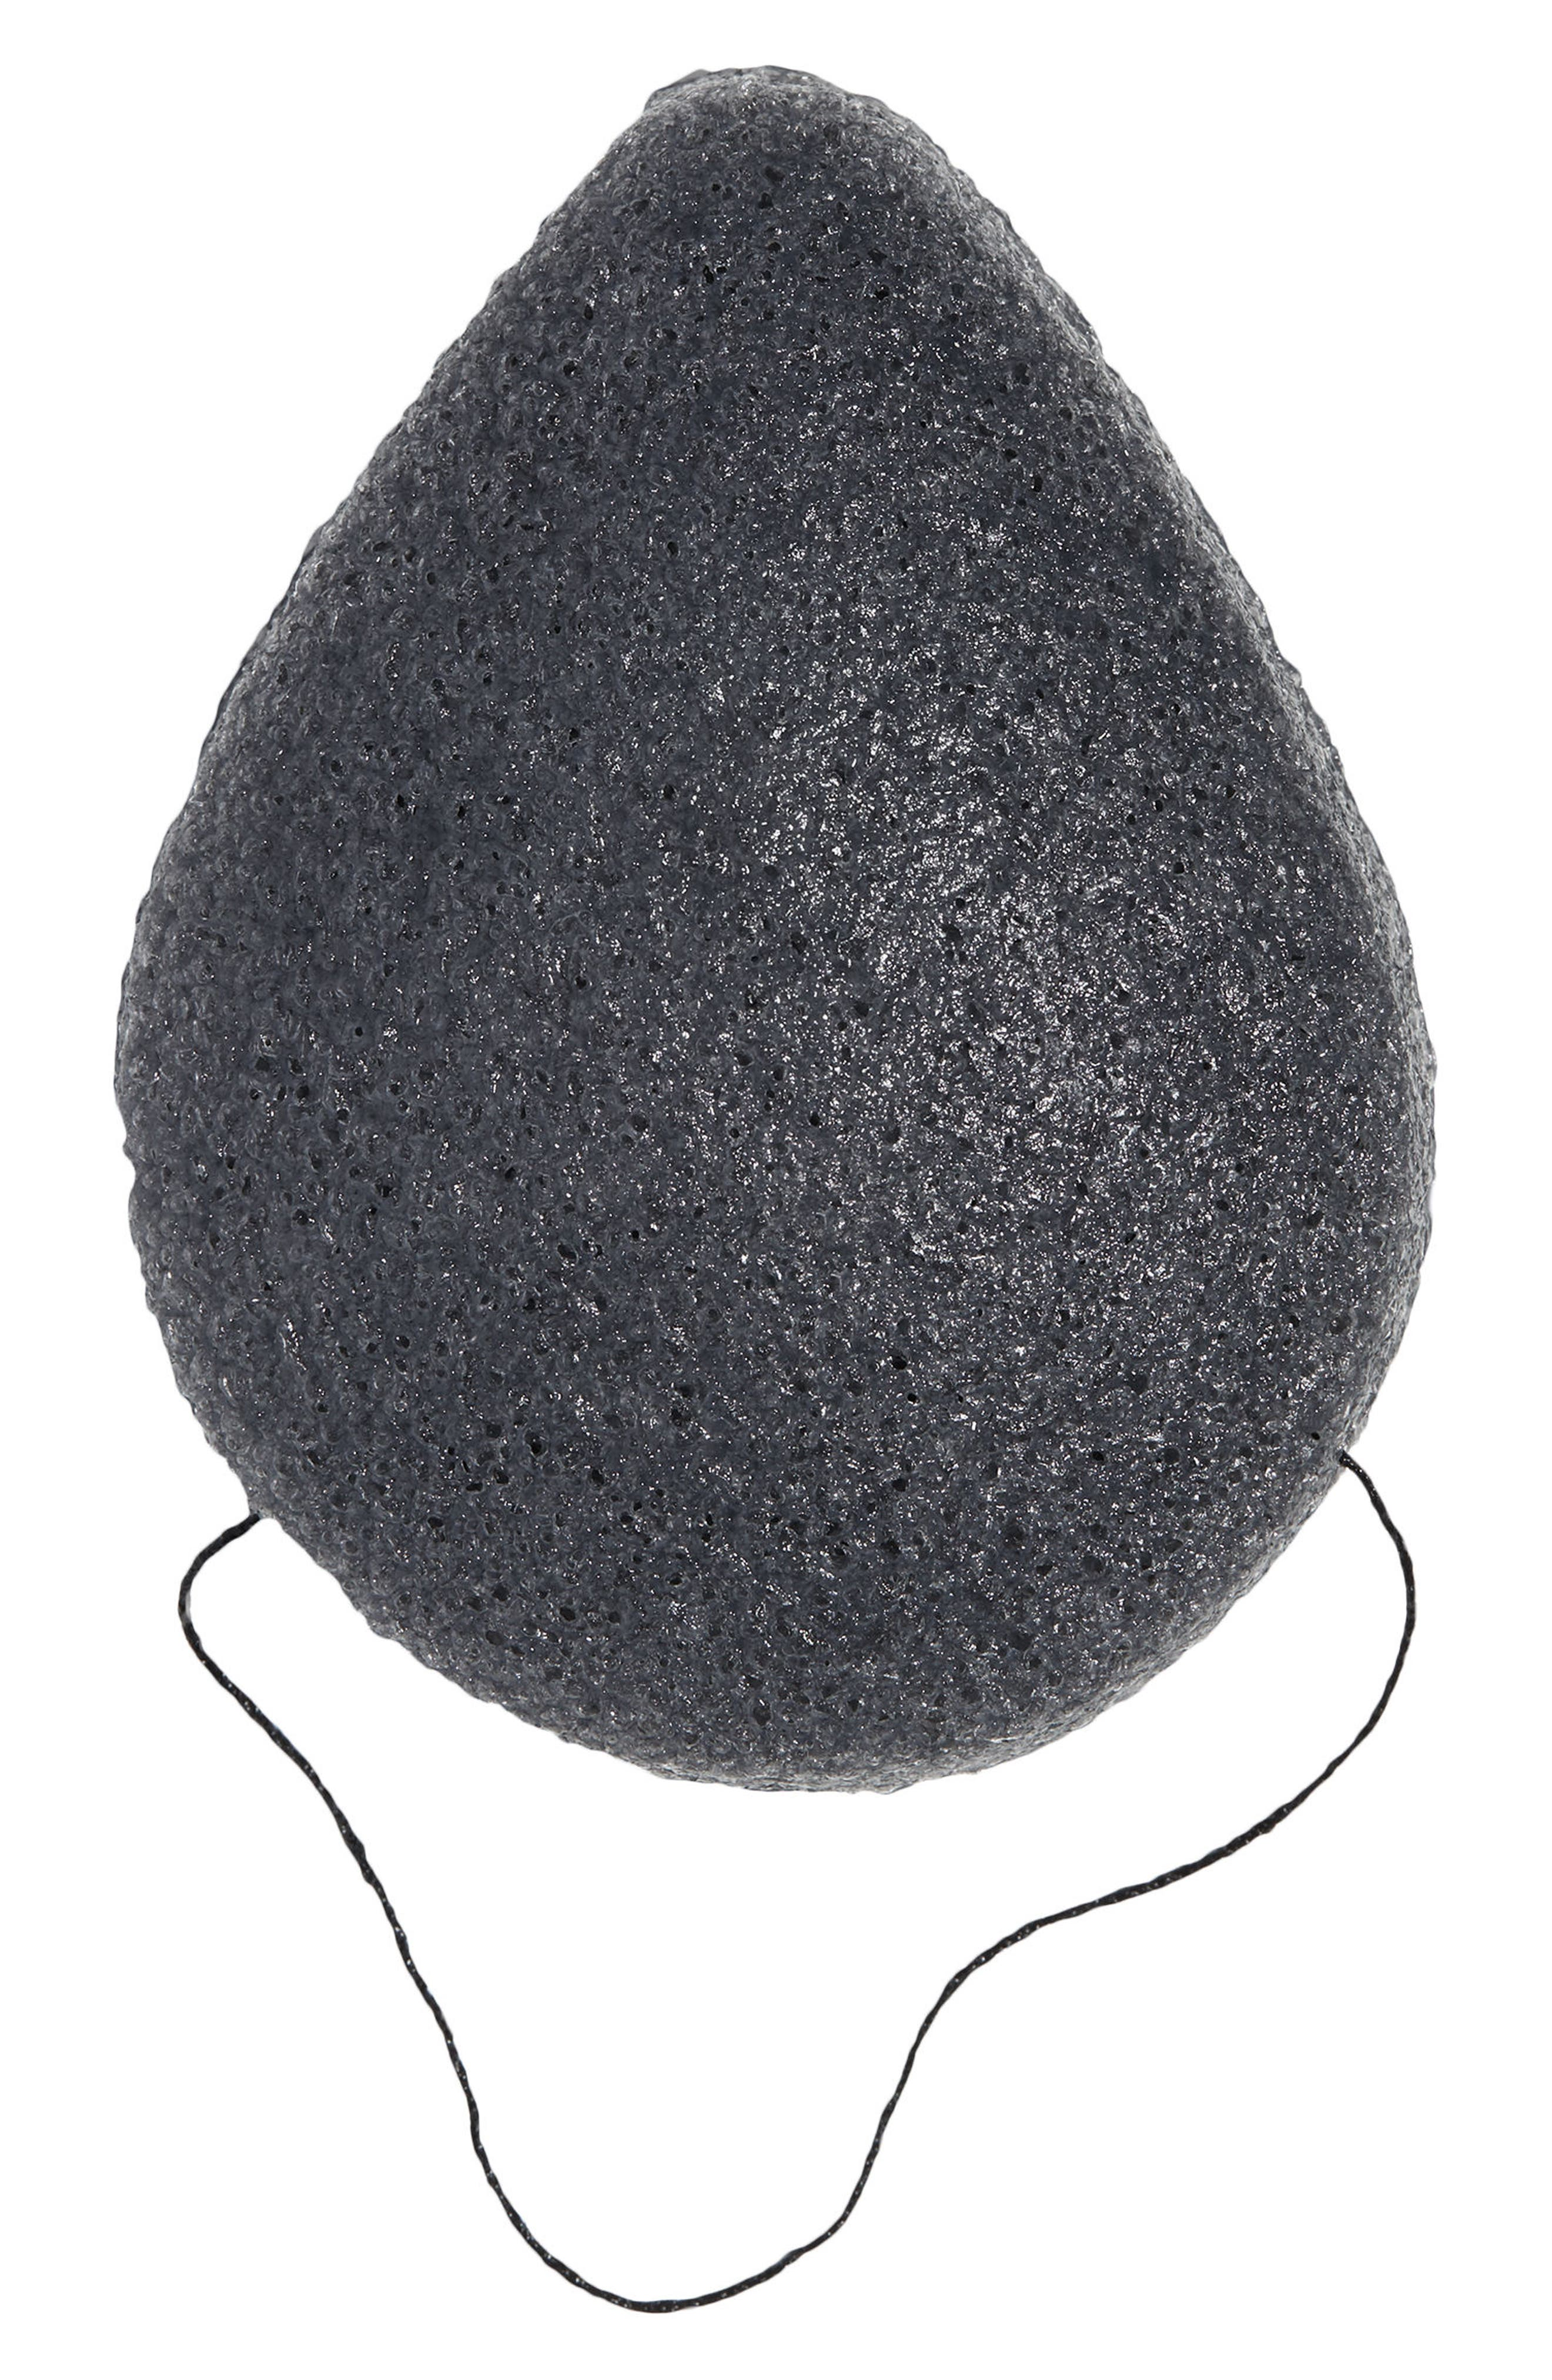 Julep Konjac Cleansing Sponge,                             Main thumbnail 6, color,                             No Color